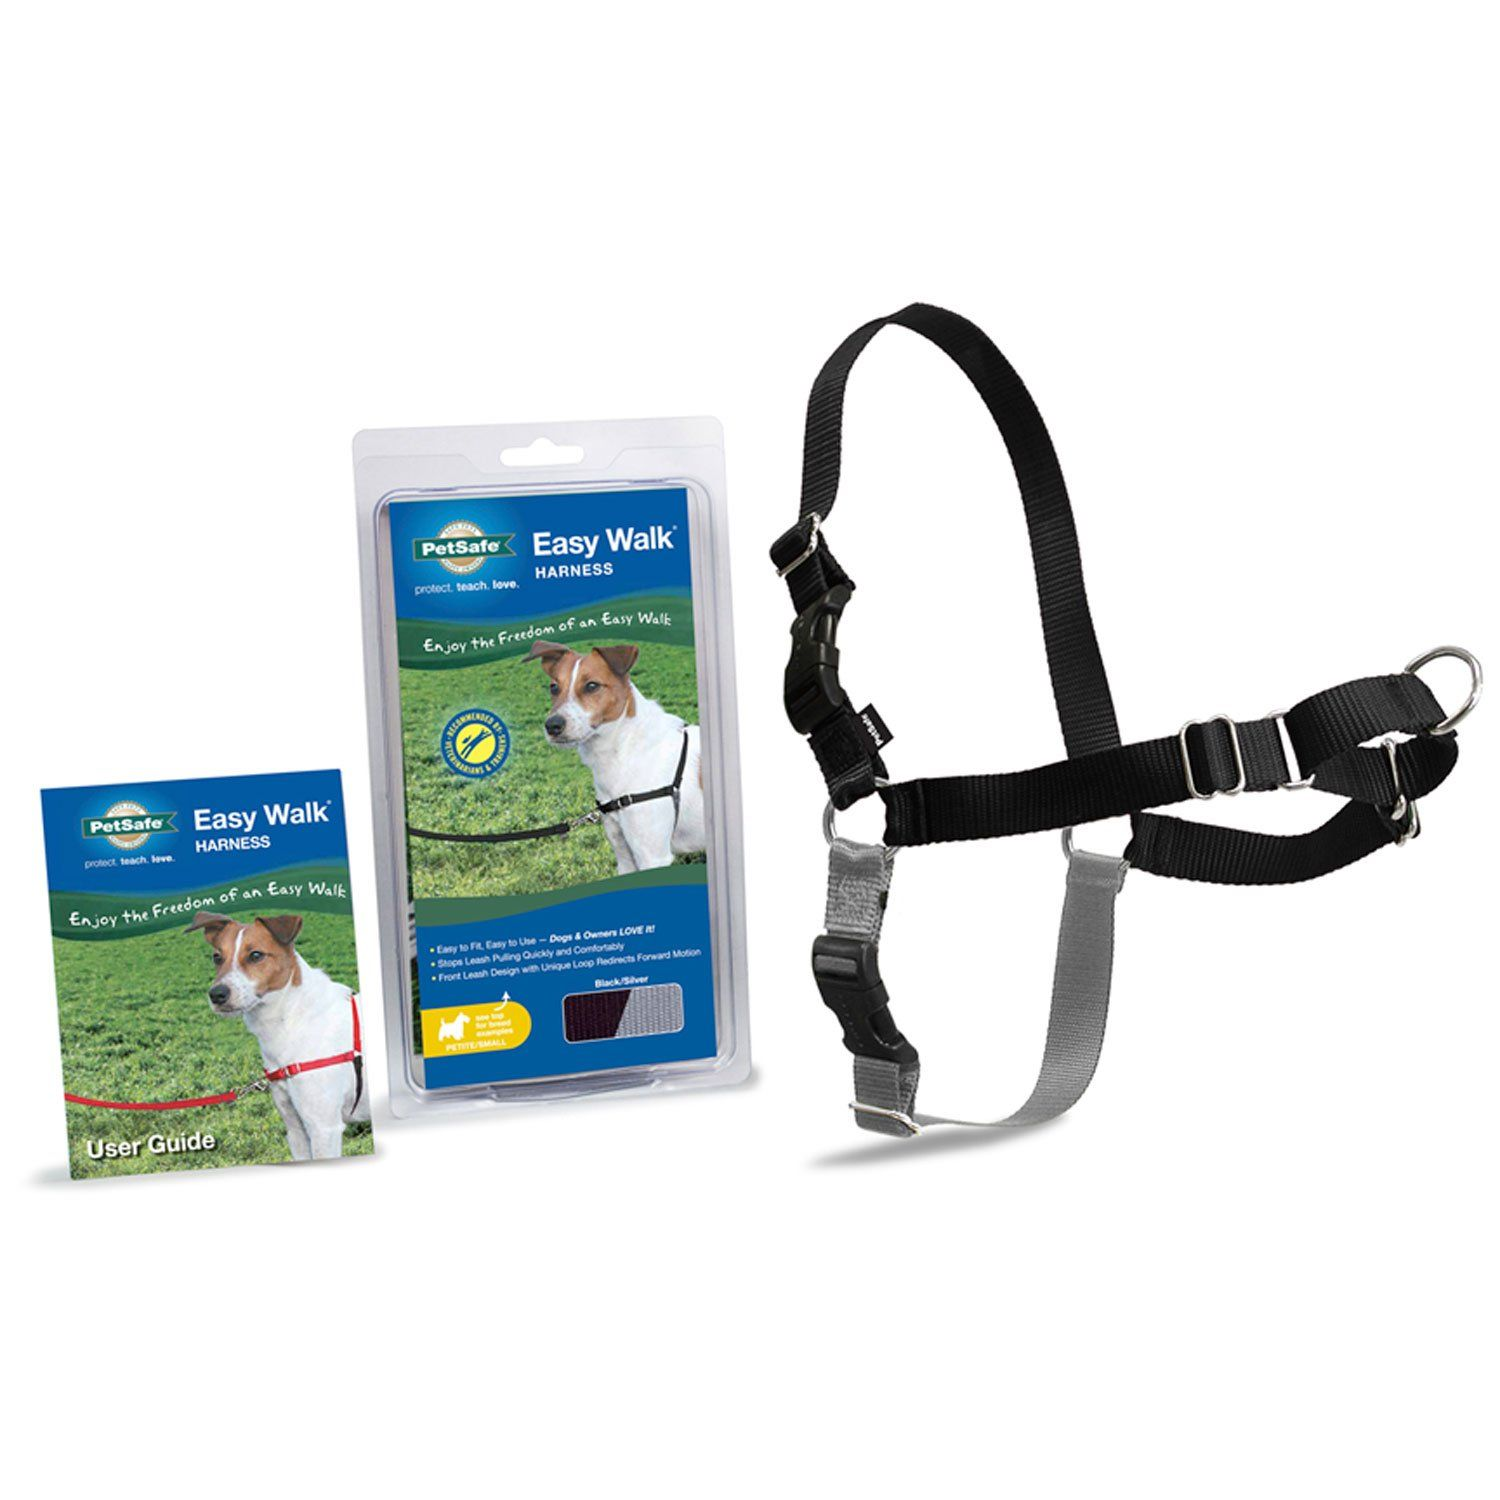 Pin By Kristen Reese On Dogs Easy Walk Harness Easy Walk Dog Harness Dog Harness